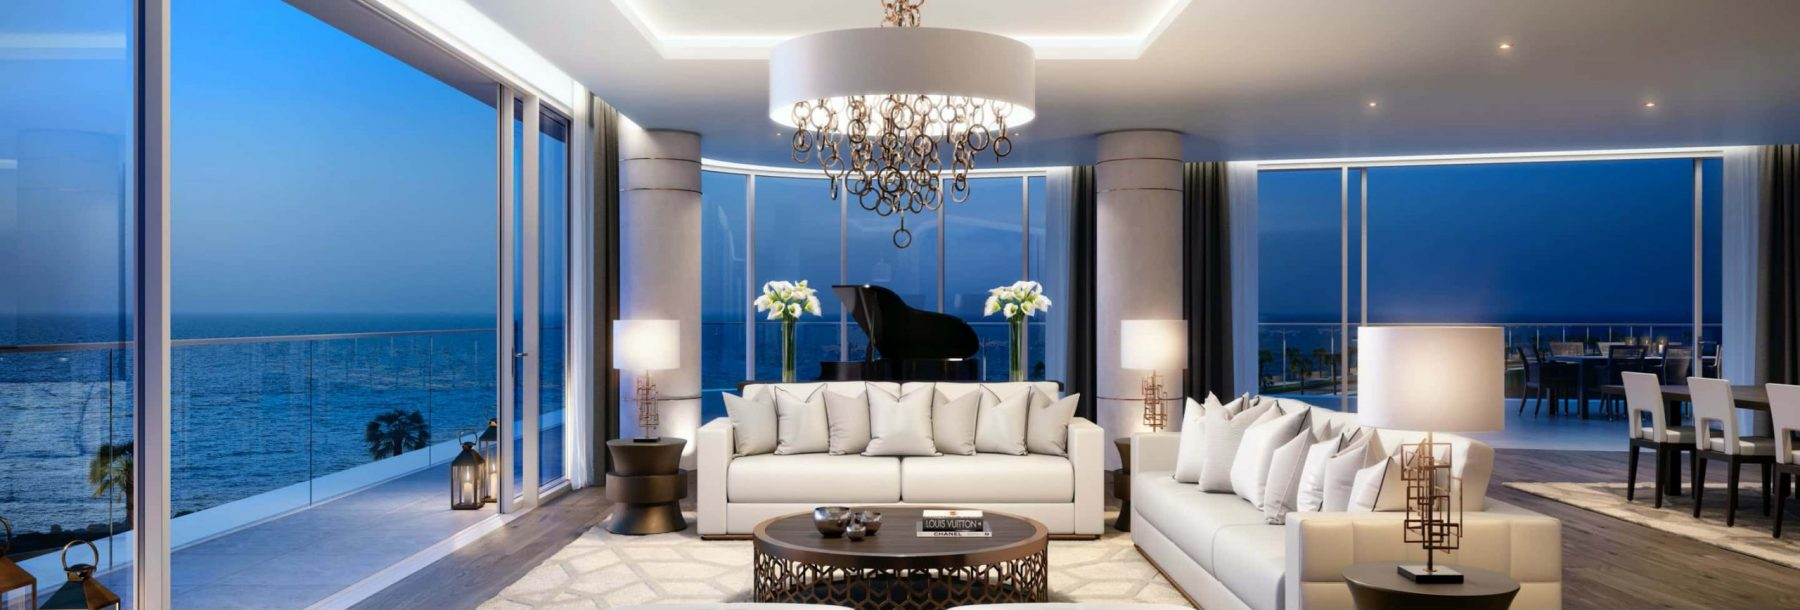 The interior of a luxury residence in Dubai